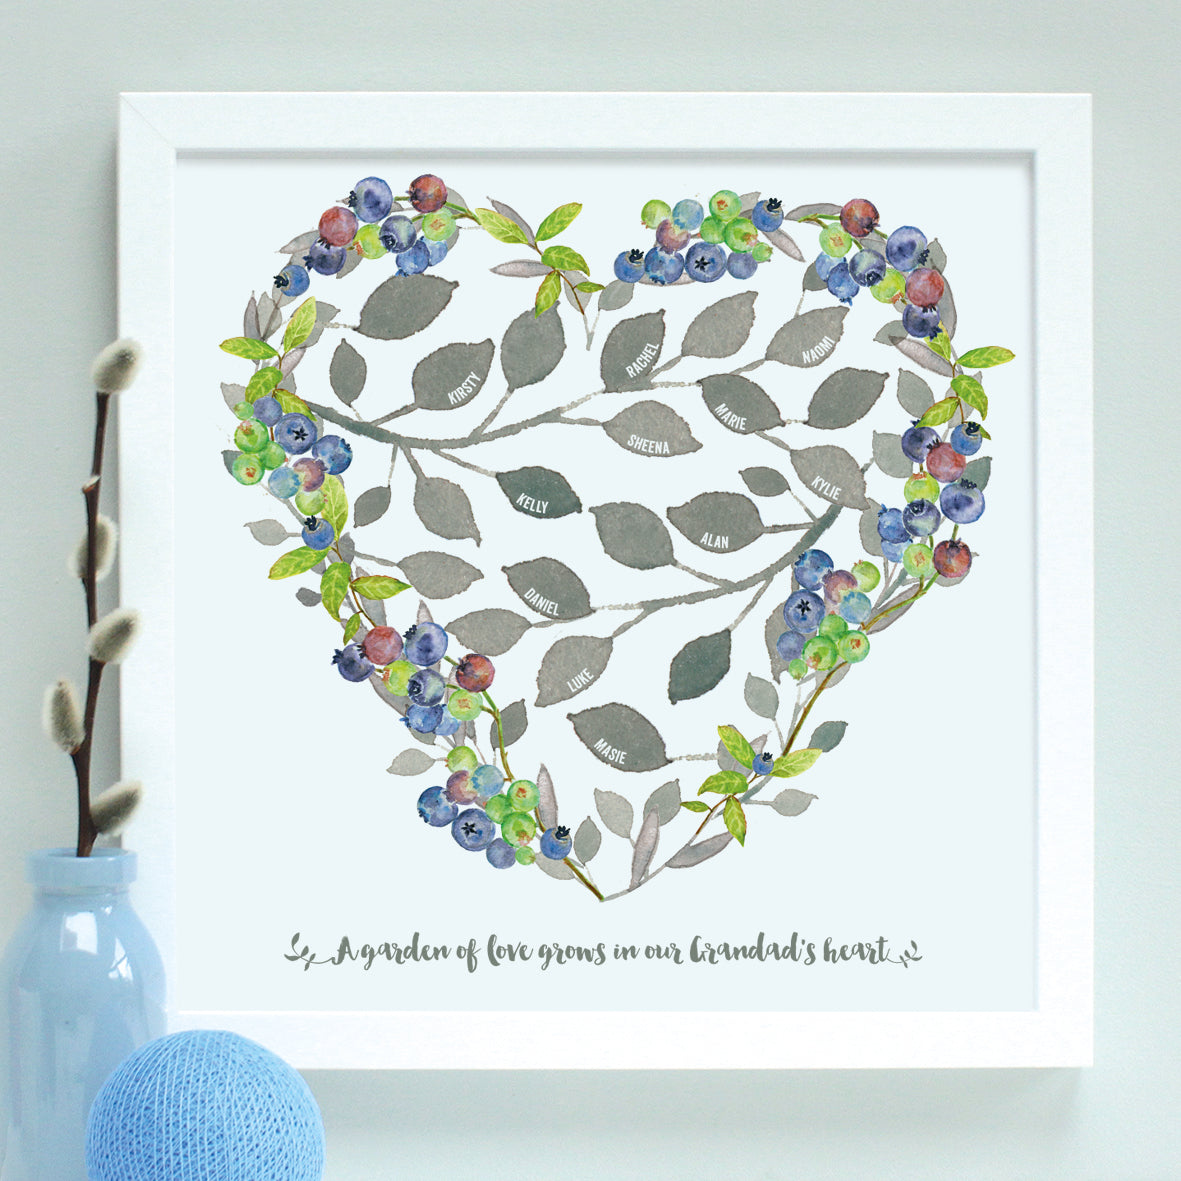 personalised grandfather heart family tree, white frame